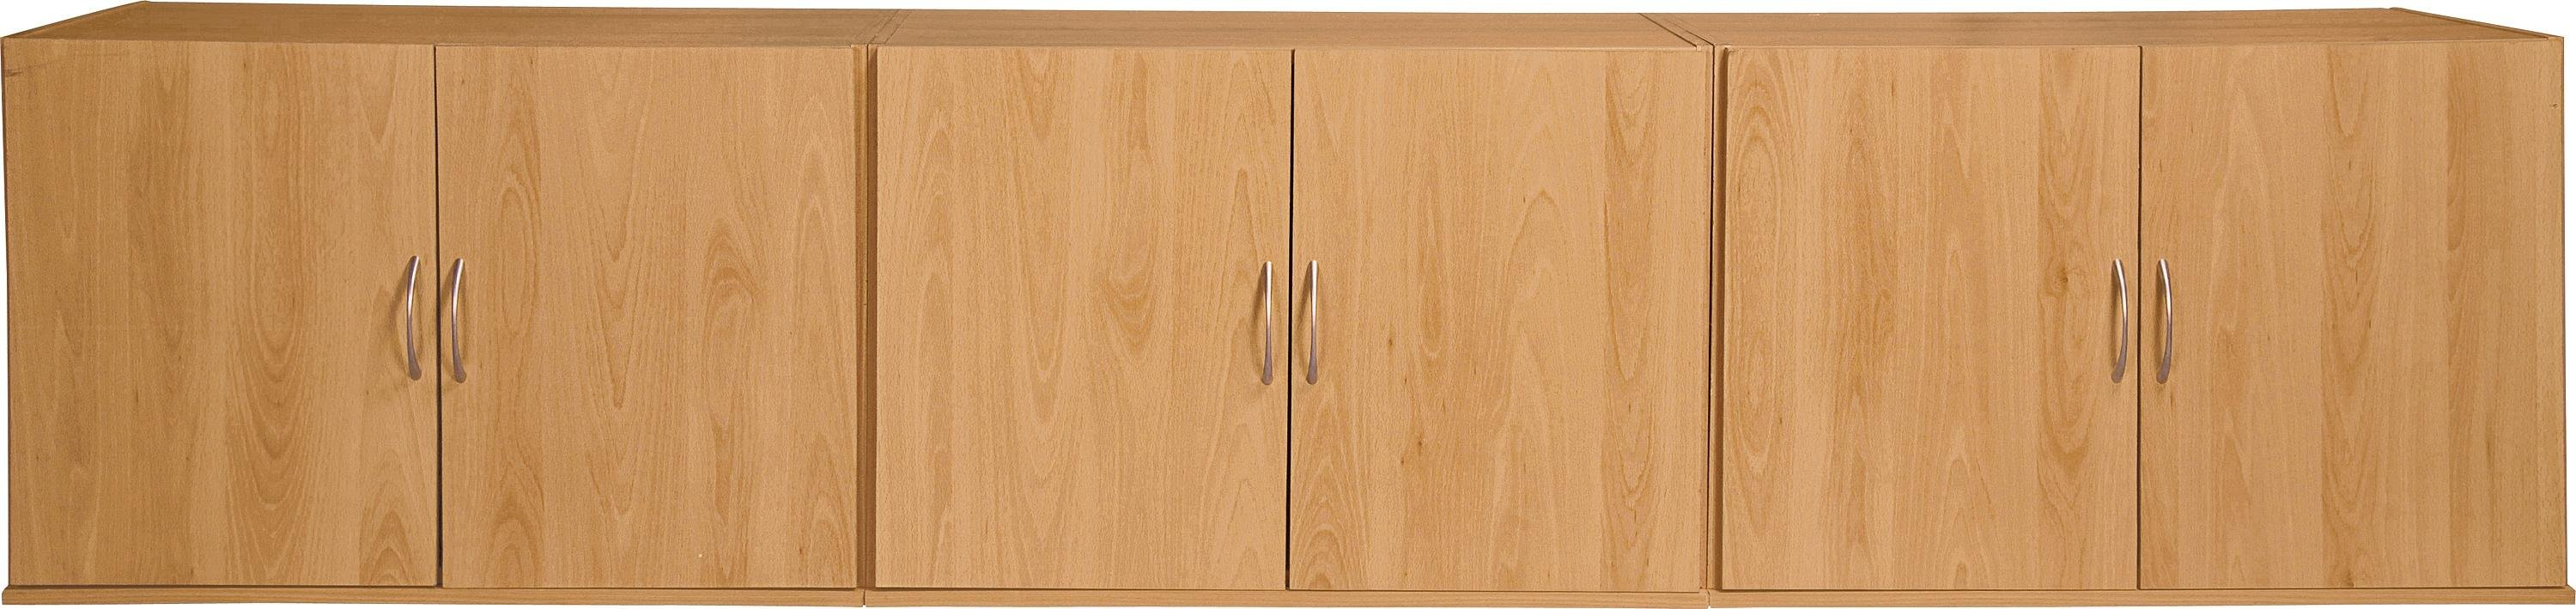 Image of Collection Cheval Overbed Cupboards - Beech Effect